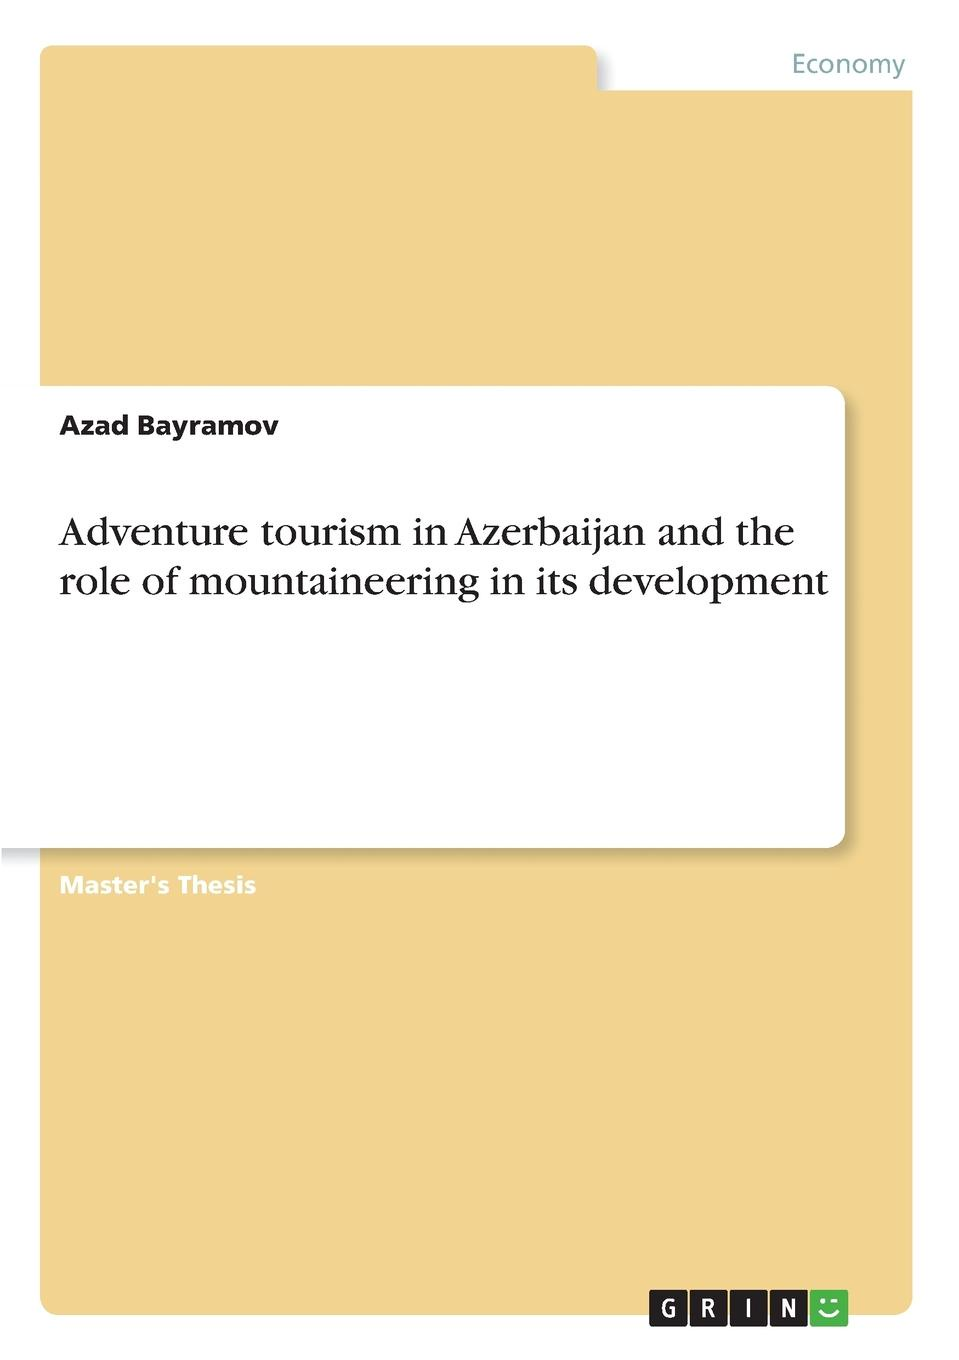 Azad Bayramov Adventure tourism in Azerbaijan and the role of mountaineering in its development jorinda ballering a tourism potential analysis of lundu district in malaysian borneo